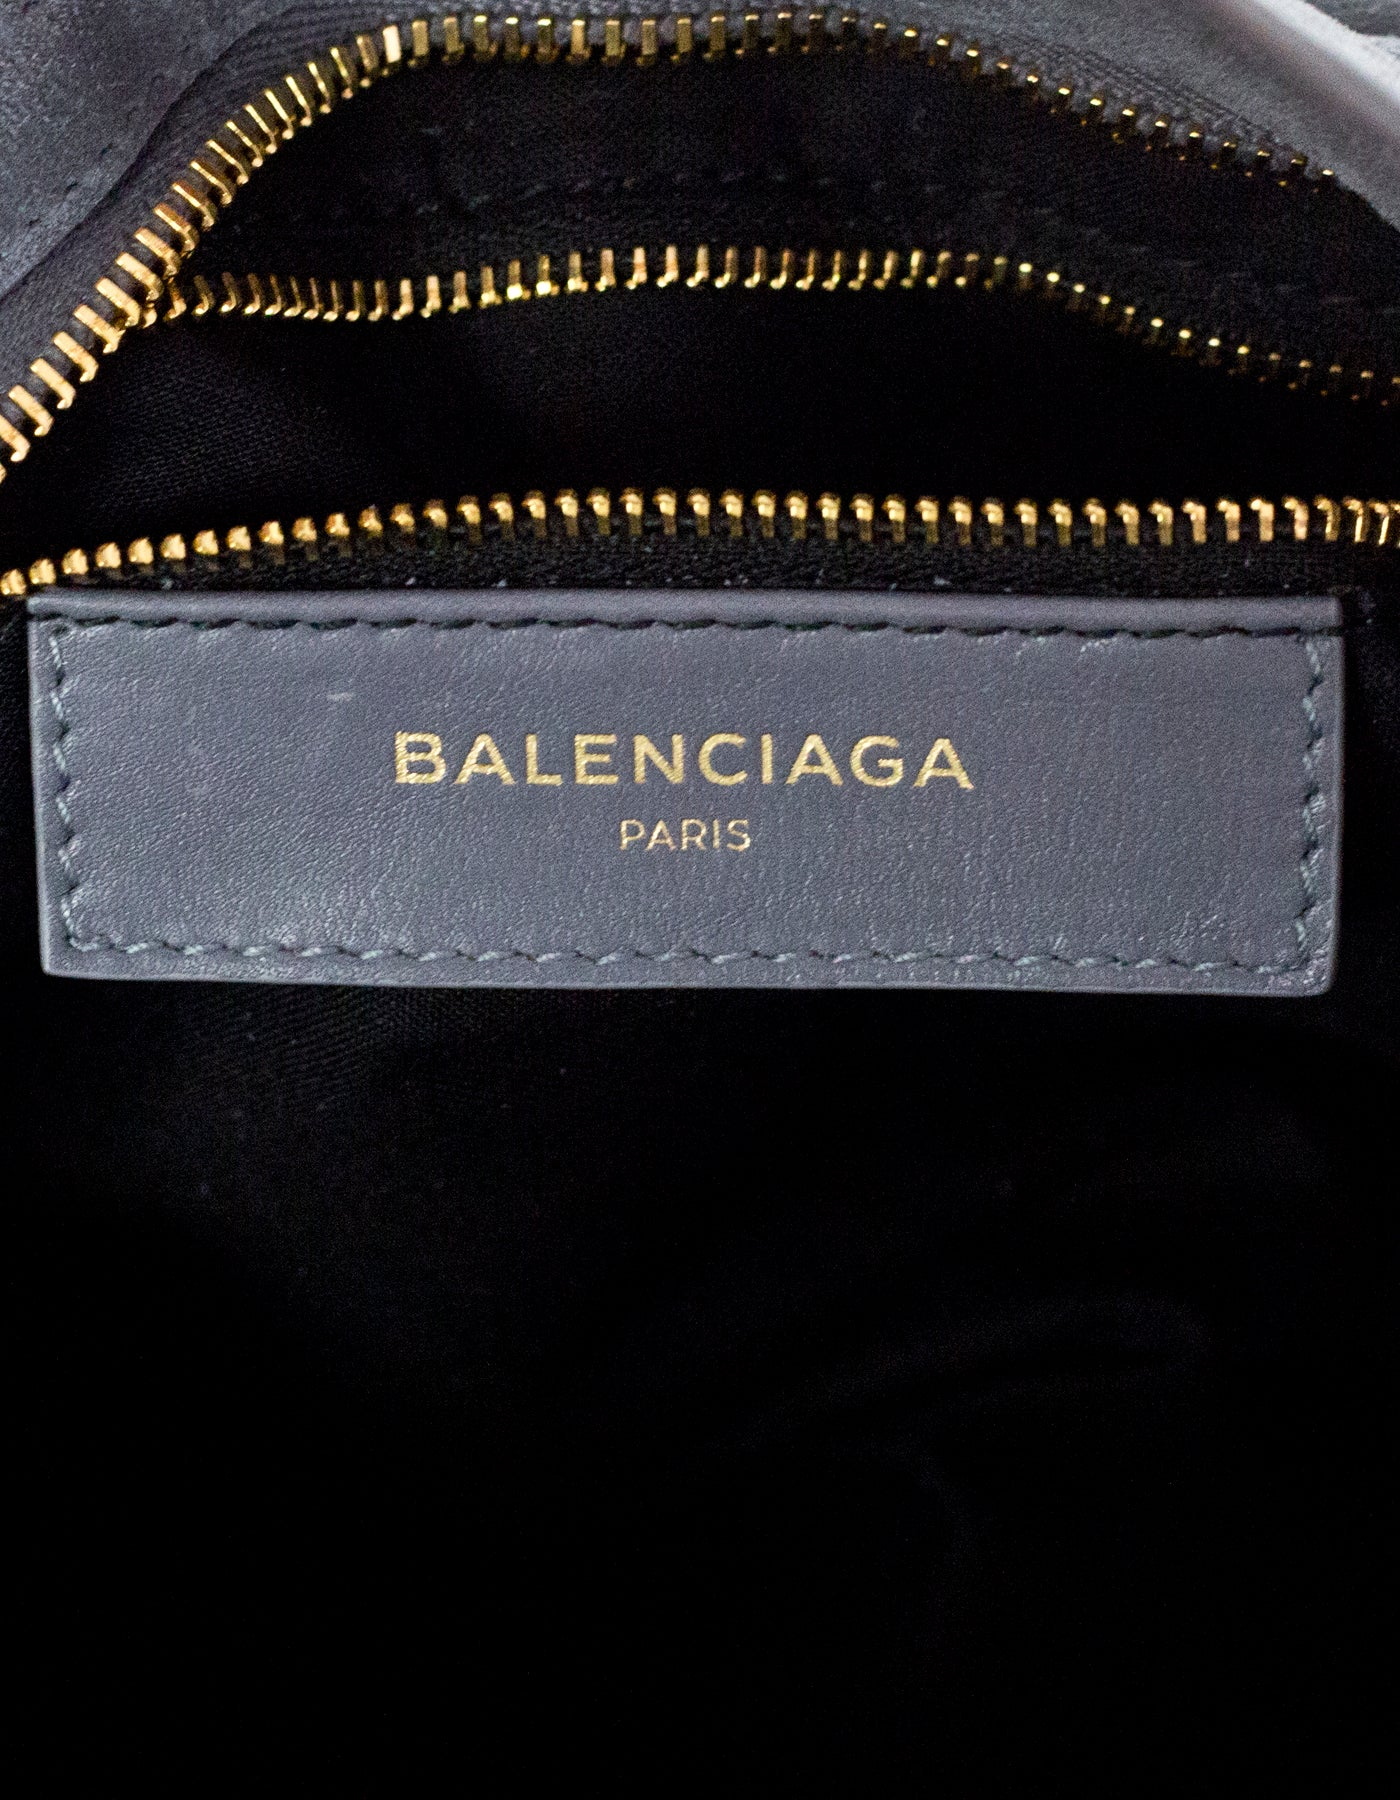 fdaa8d29bc7 Balenciaga Grey Suede Metallic Edge City Small Crossbody Bag NEW For Sale  at 1stdibs